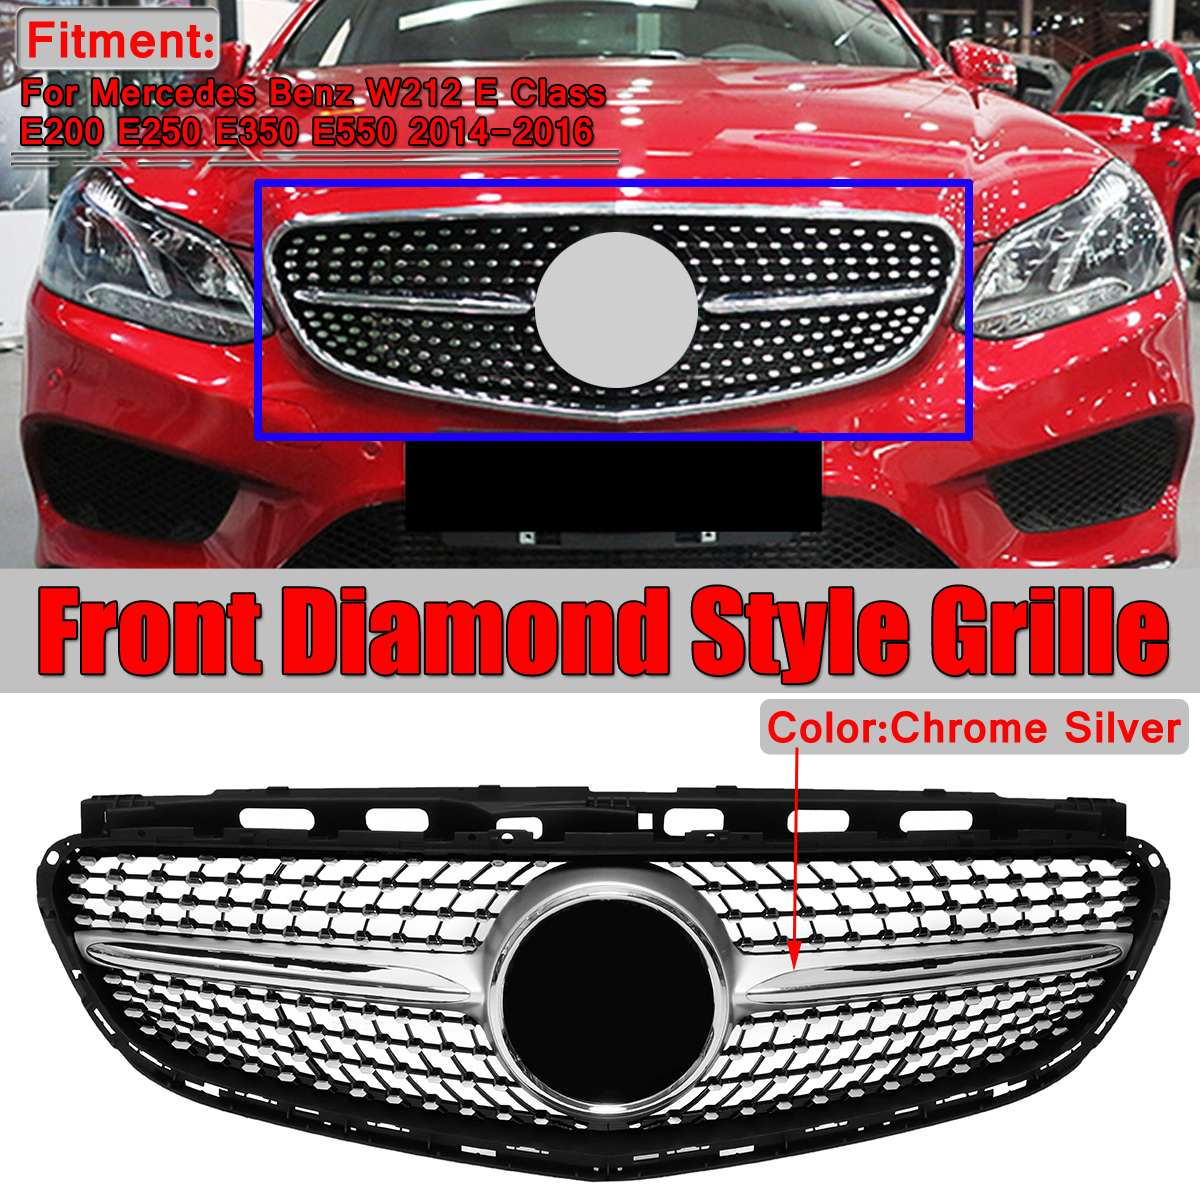 Diamond Style W212 Car Front Bumper Grille Grill For Mercedes For Benz W212 E Class E200 E250 E350 E550 2014-2016 Racing GrillsDiamond Style W212 Car Front Bumper Grille Grill For Mercedes For Benz W212 E Class E200 E250 E350 E550 2014-2016 Racing Grills